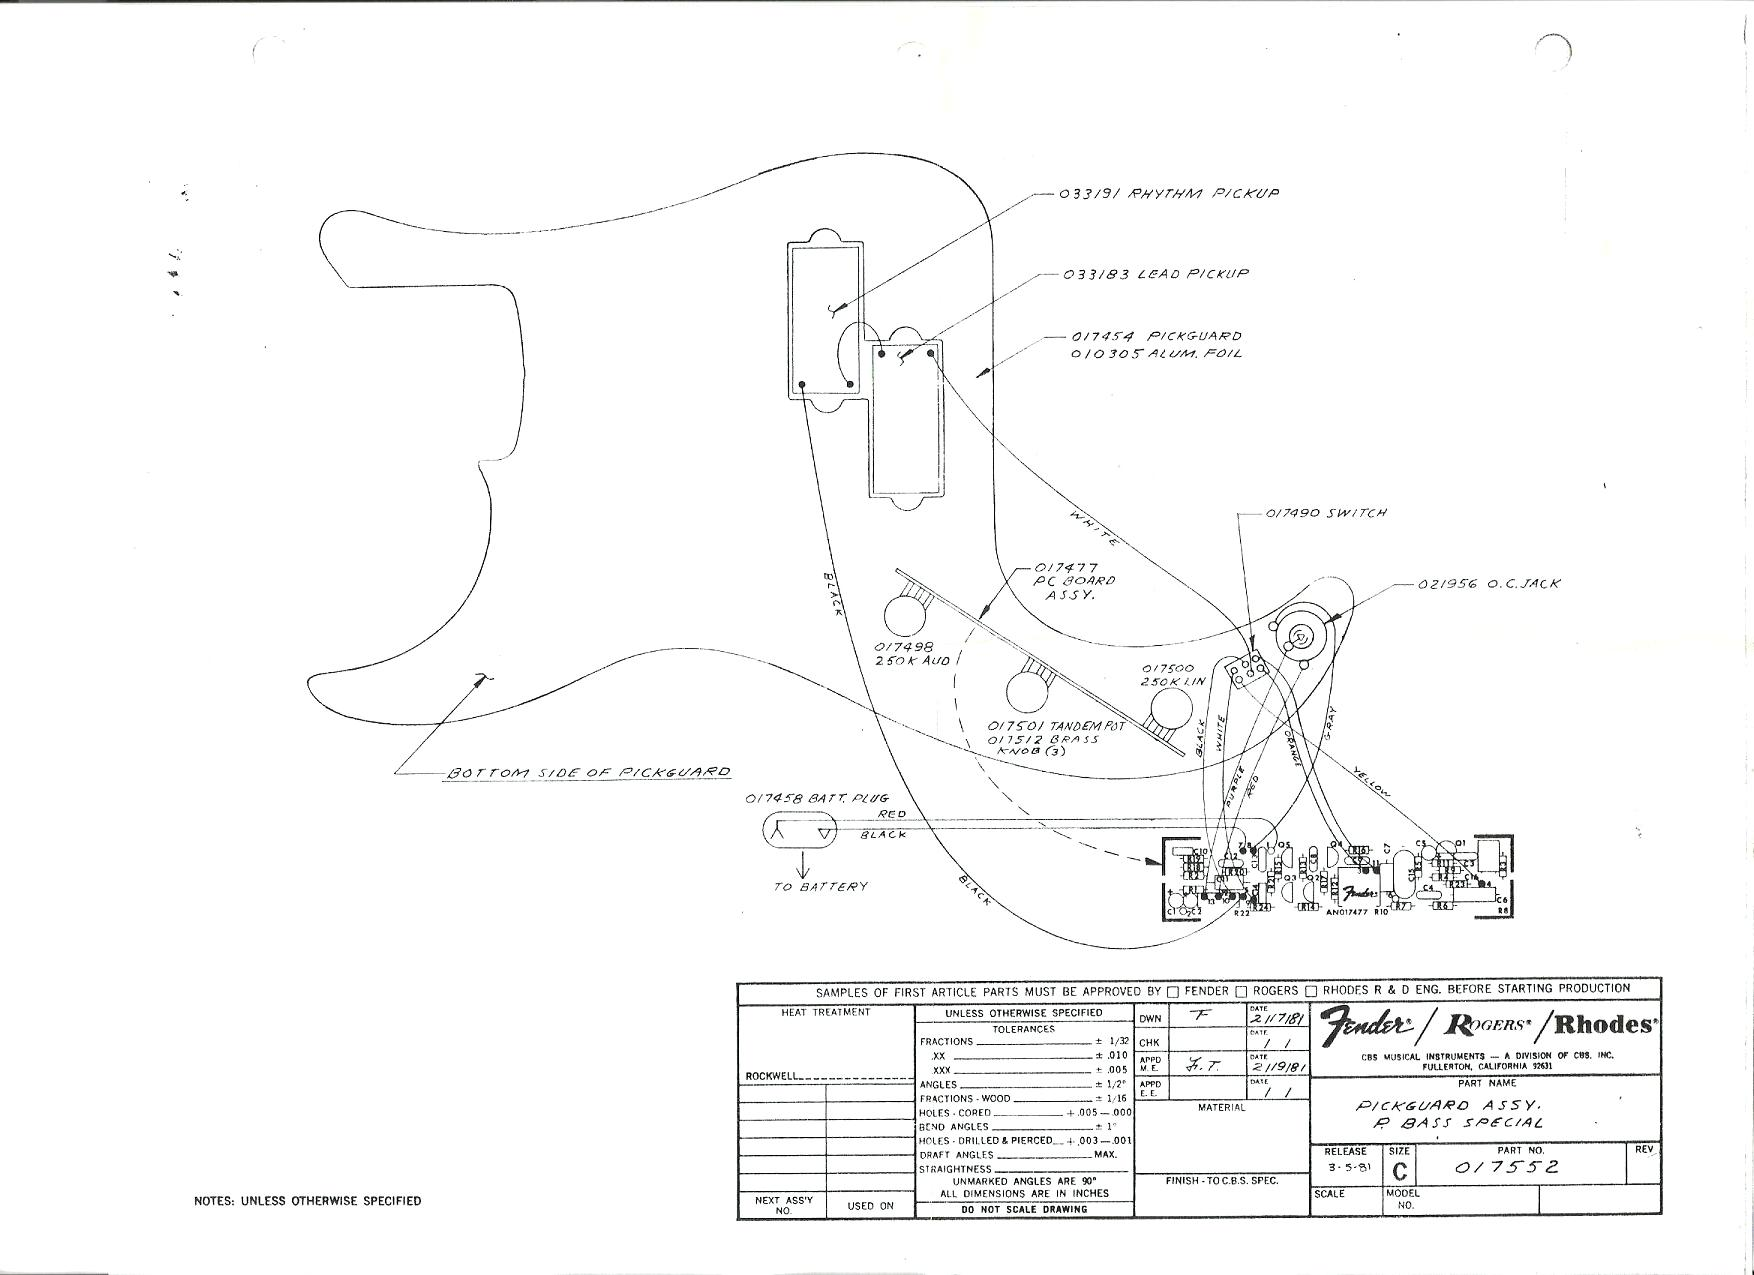 wiring diagram for telecaster trailer uk 3 way wall switch schematic database drawing at getdrawings free personal use light 1754x1275